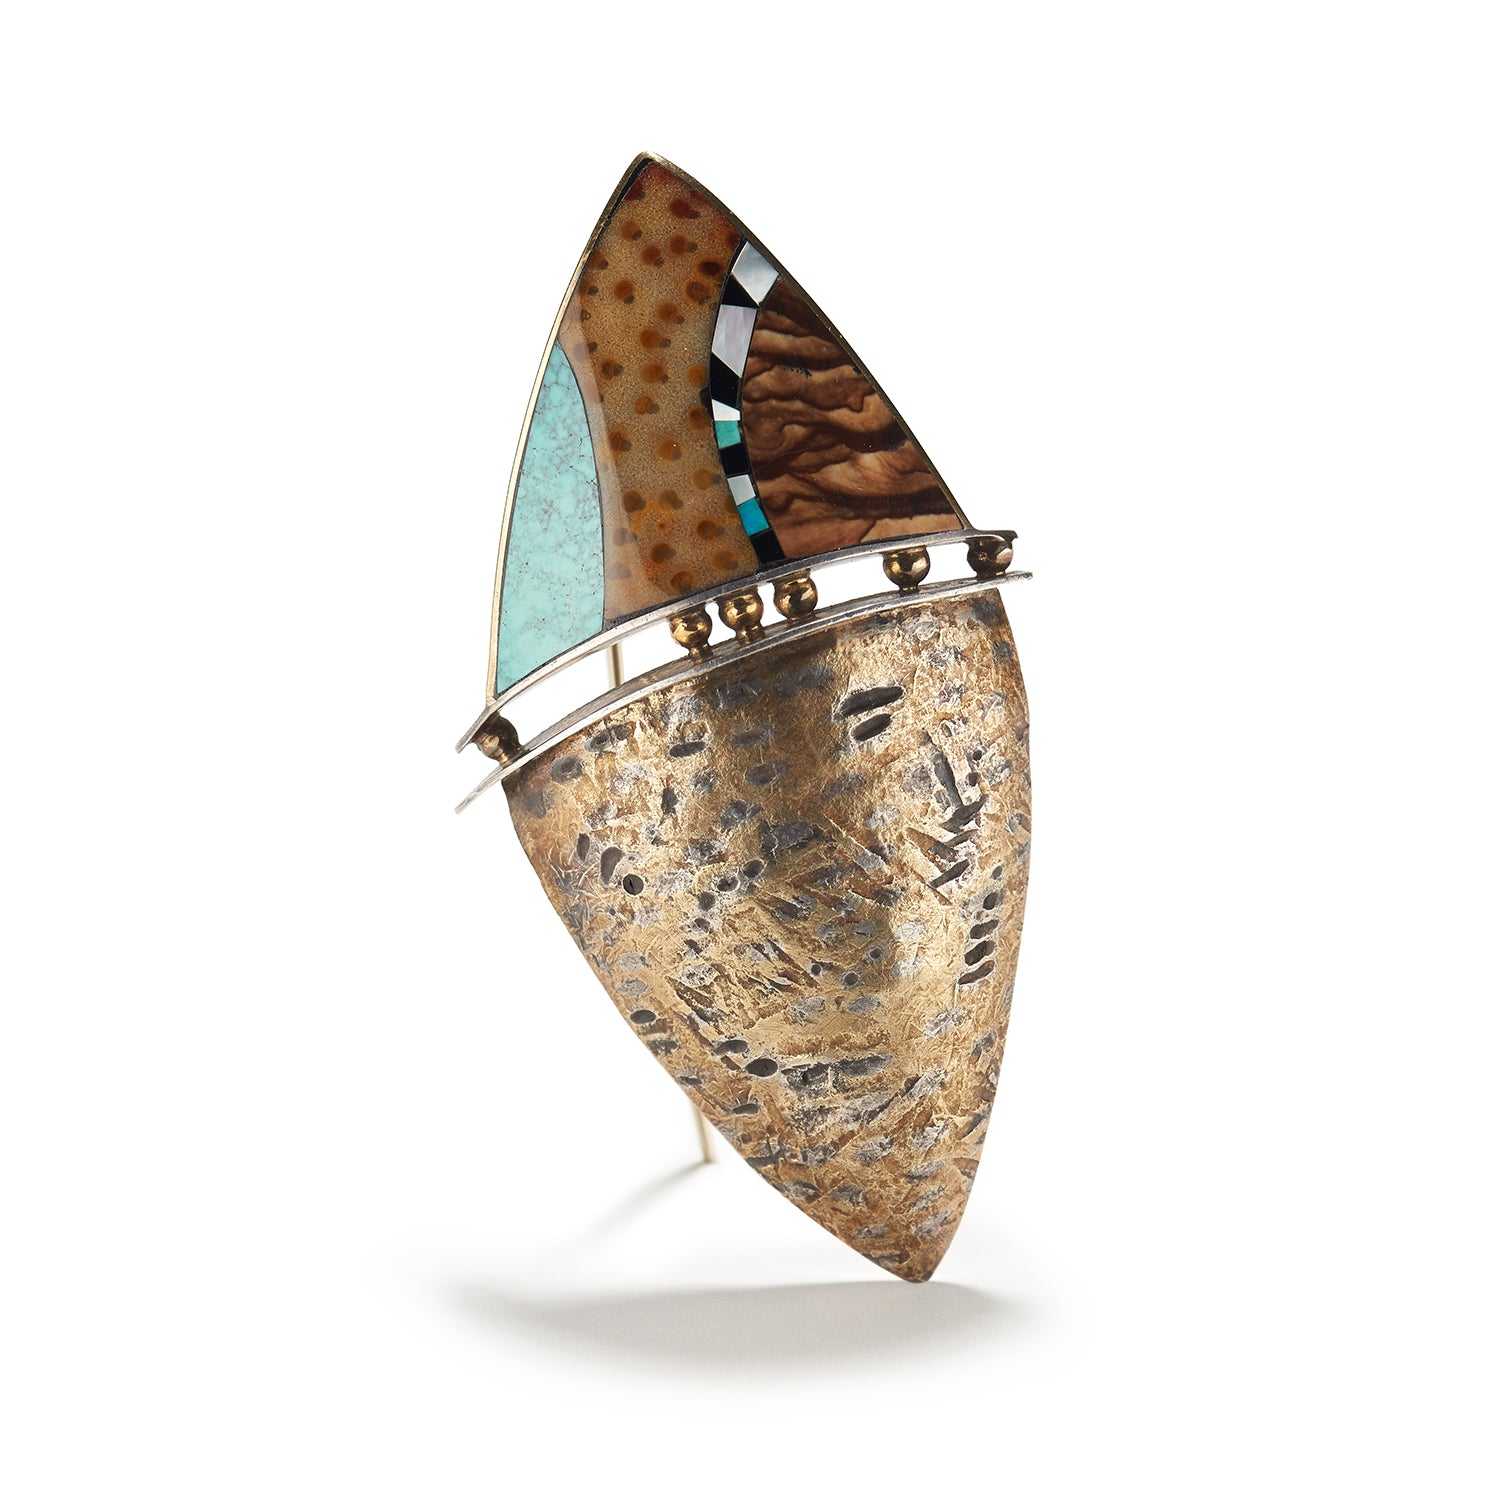 Inlaid Jasper, Palm Wood and Turquoise Brooch